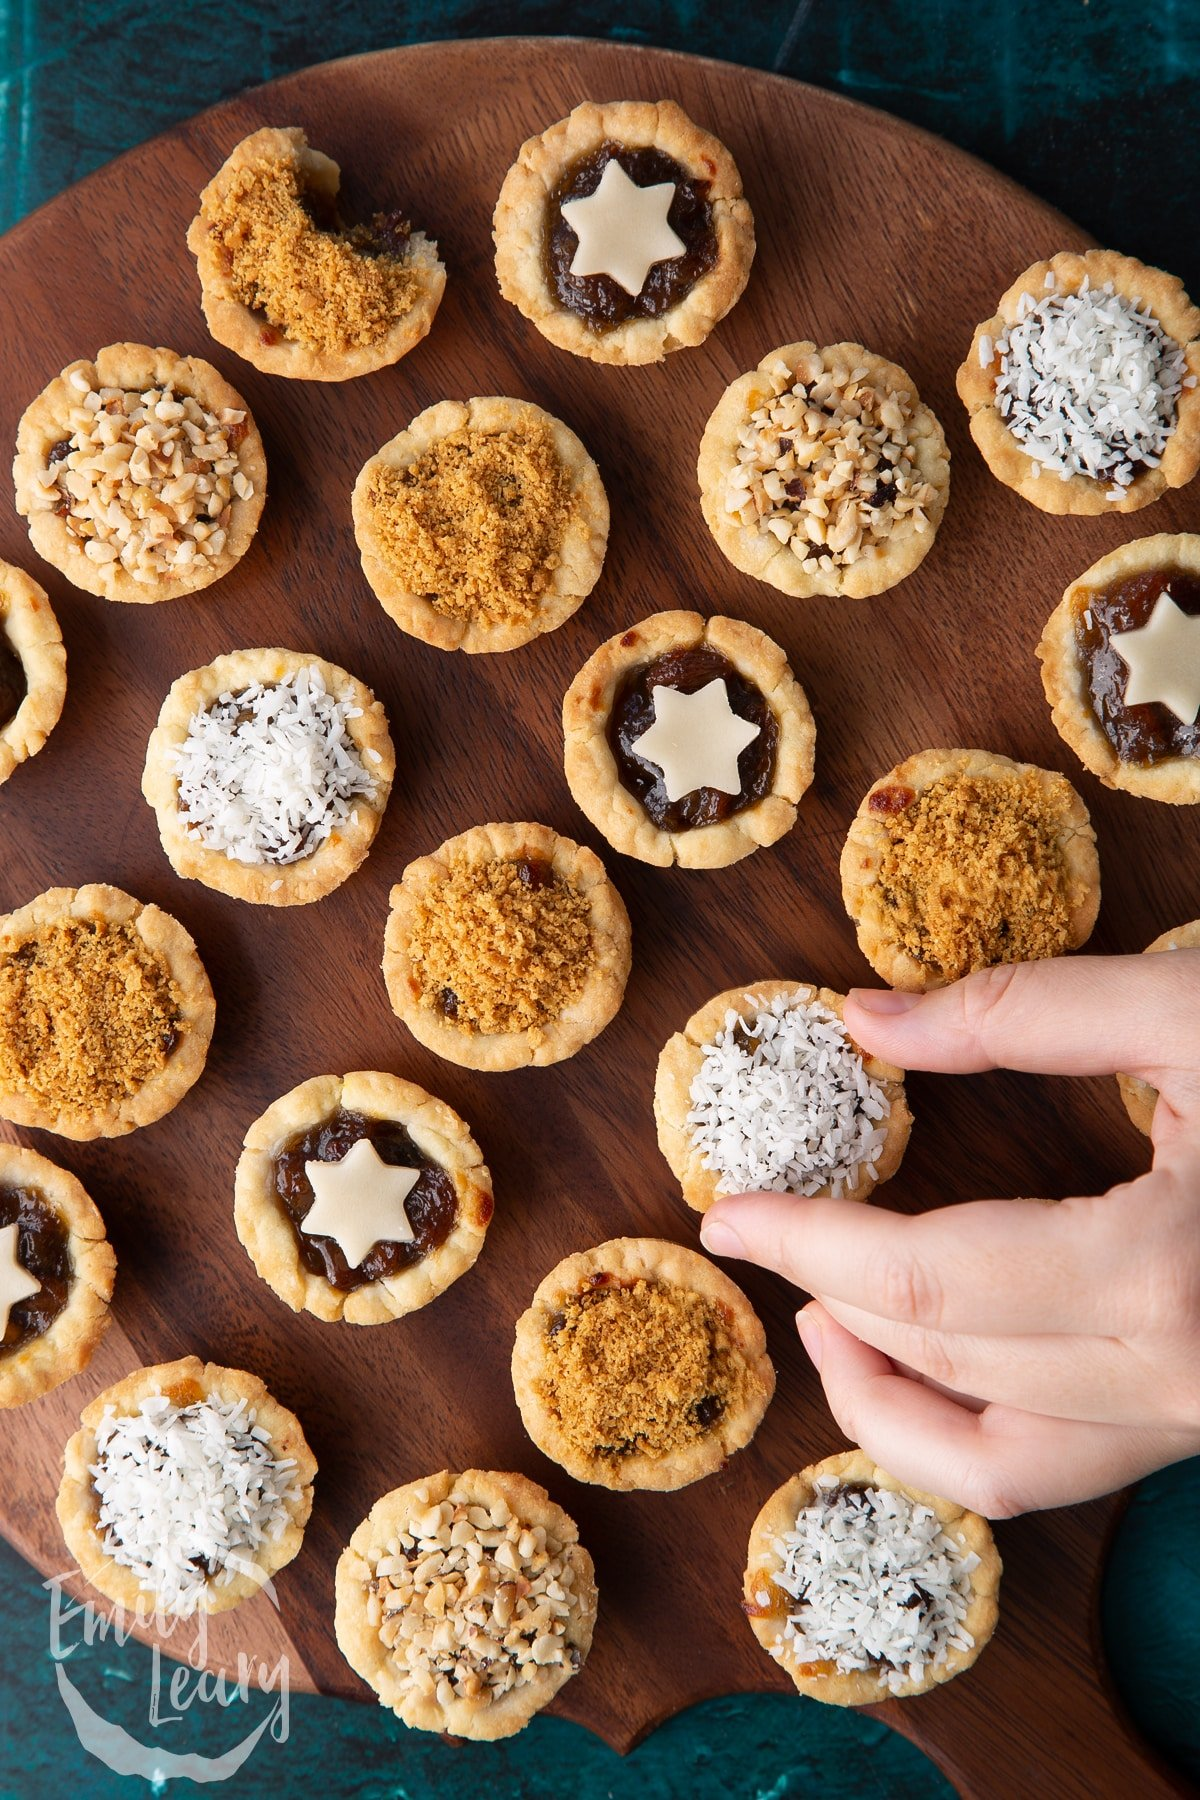 Mini mince pies, shown from above on a dark wooden board. A hand reaches for a desiccated coconut topped one.